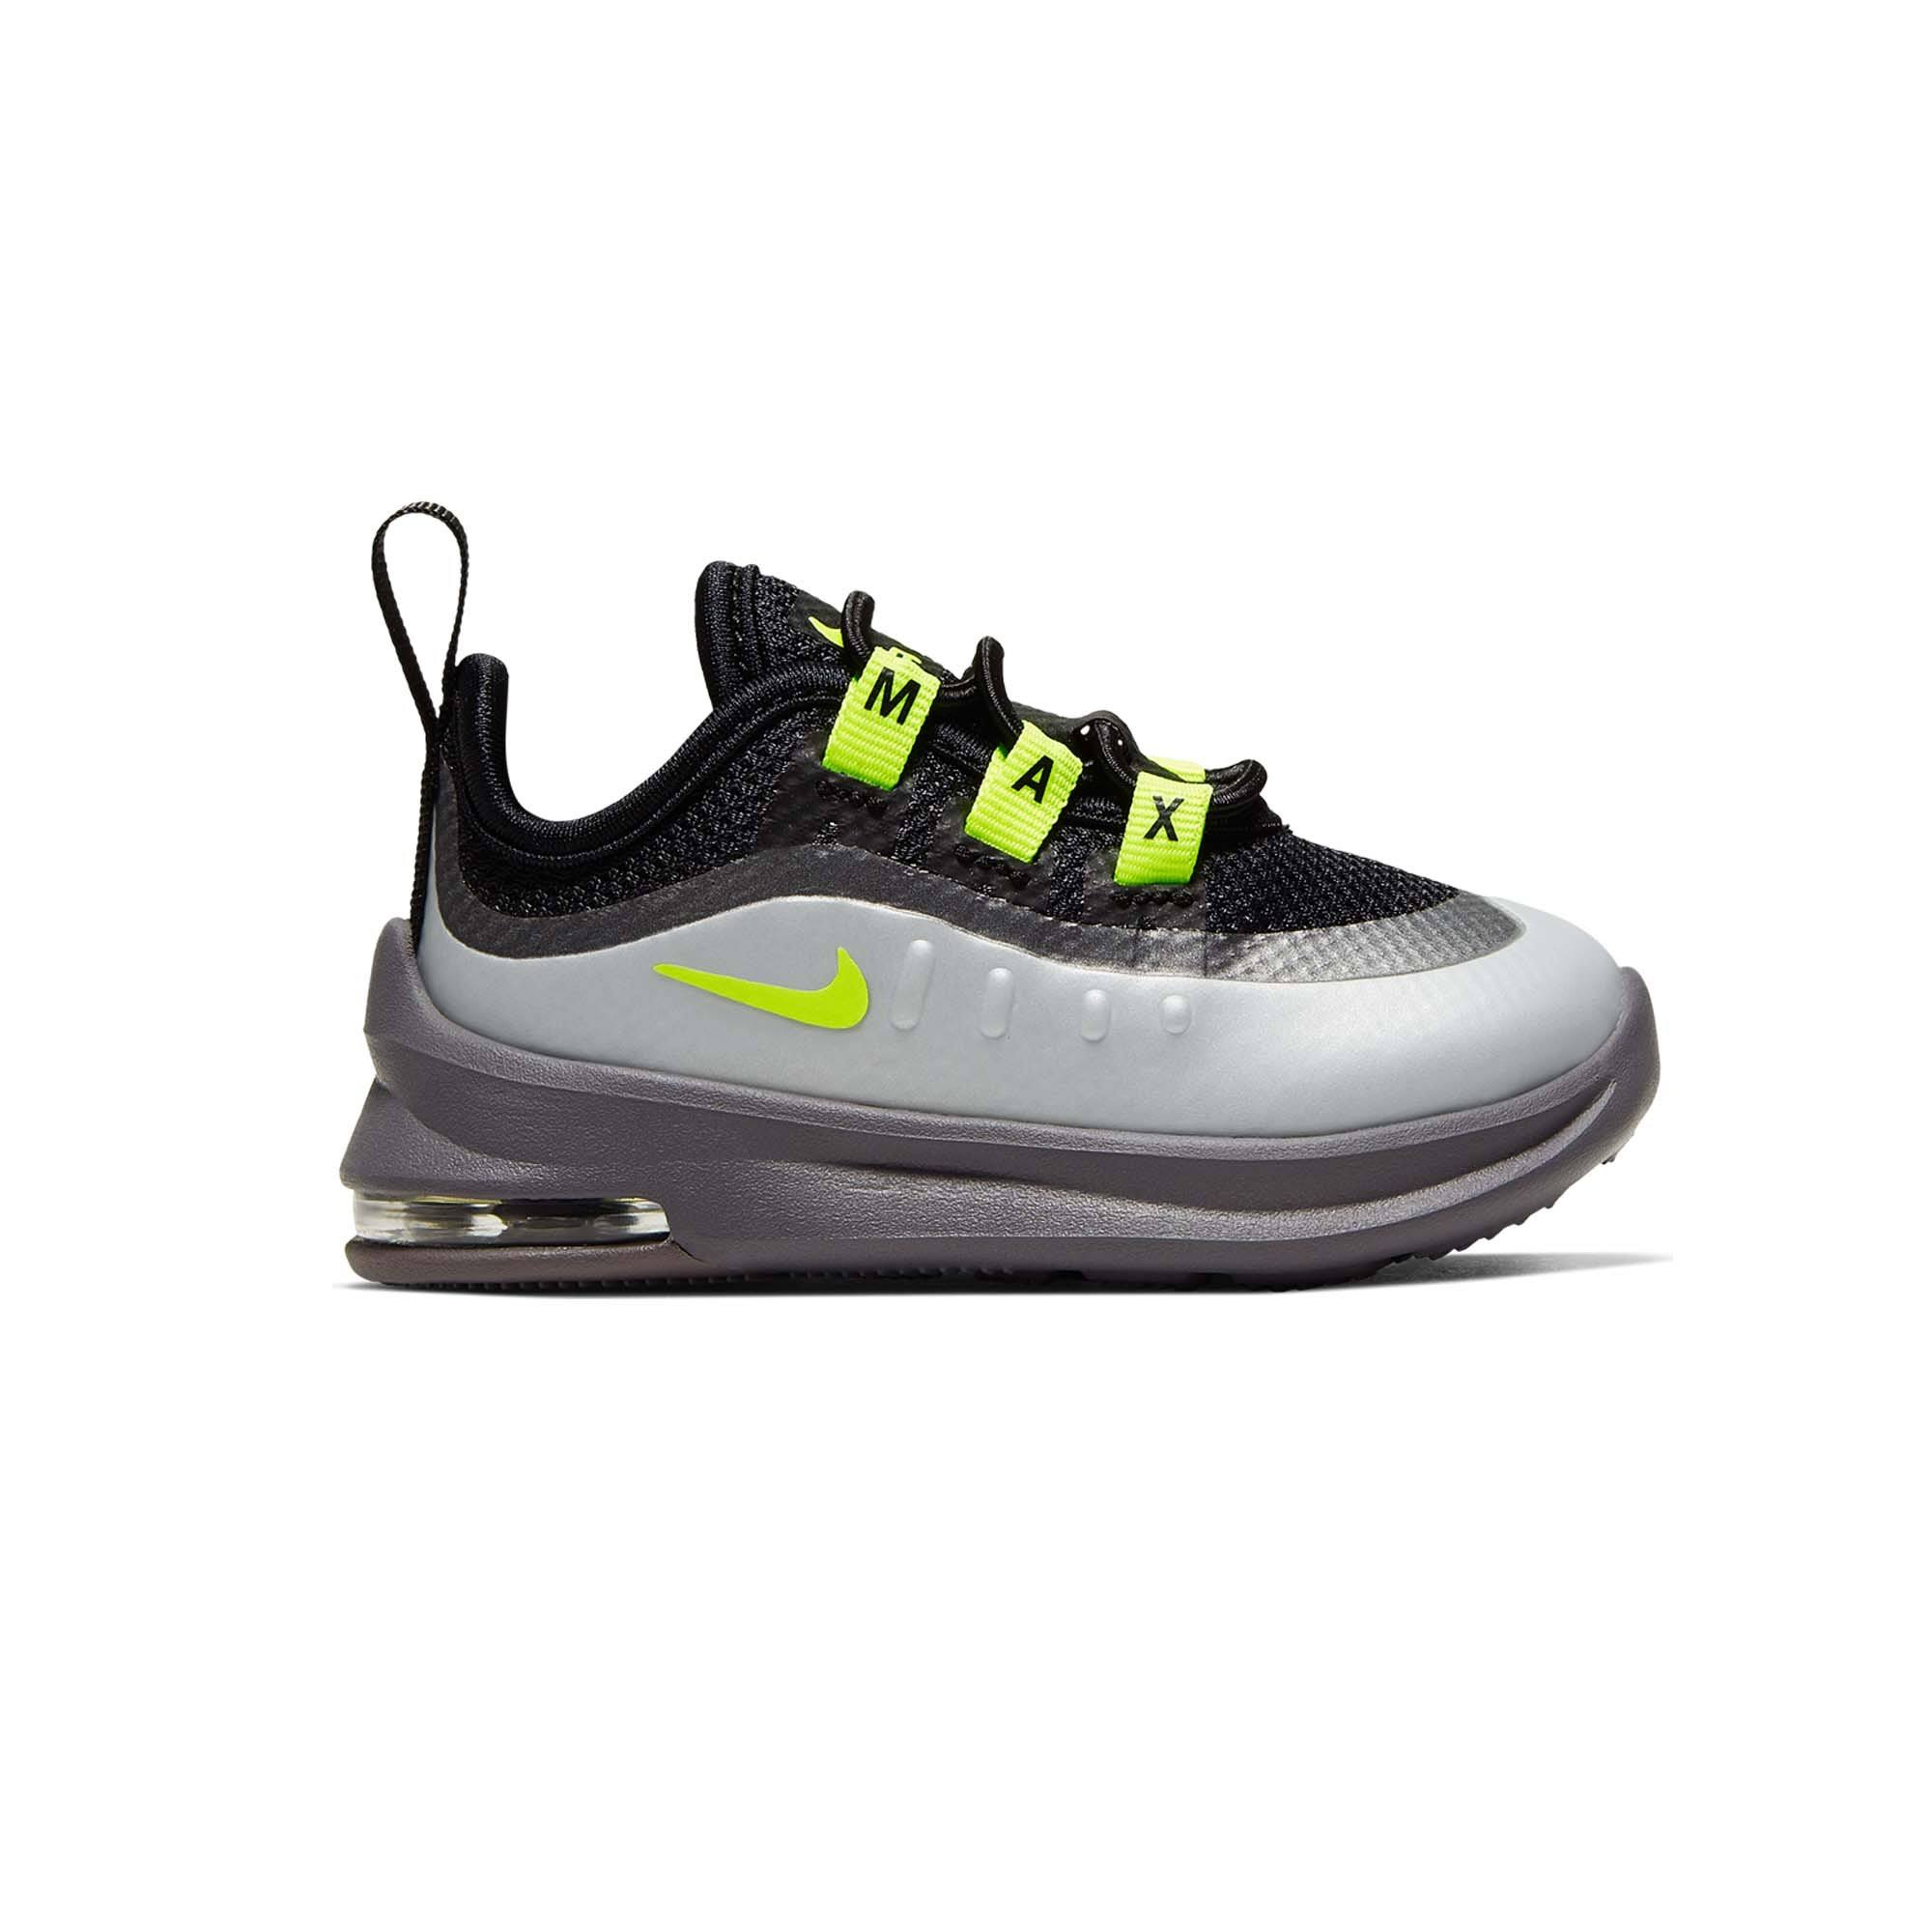 Nike Air Max Axis Infant Trainer, Black / UK 5.5